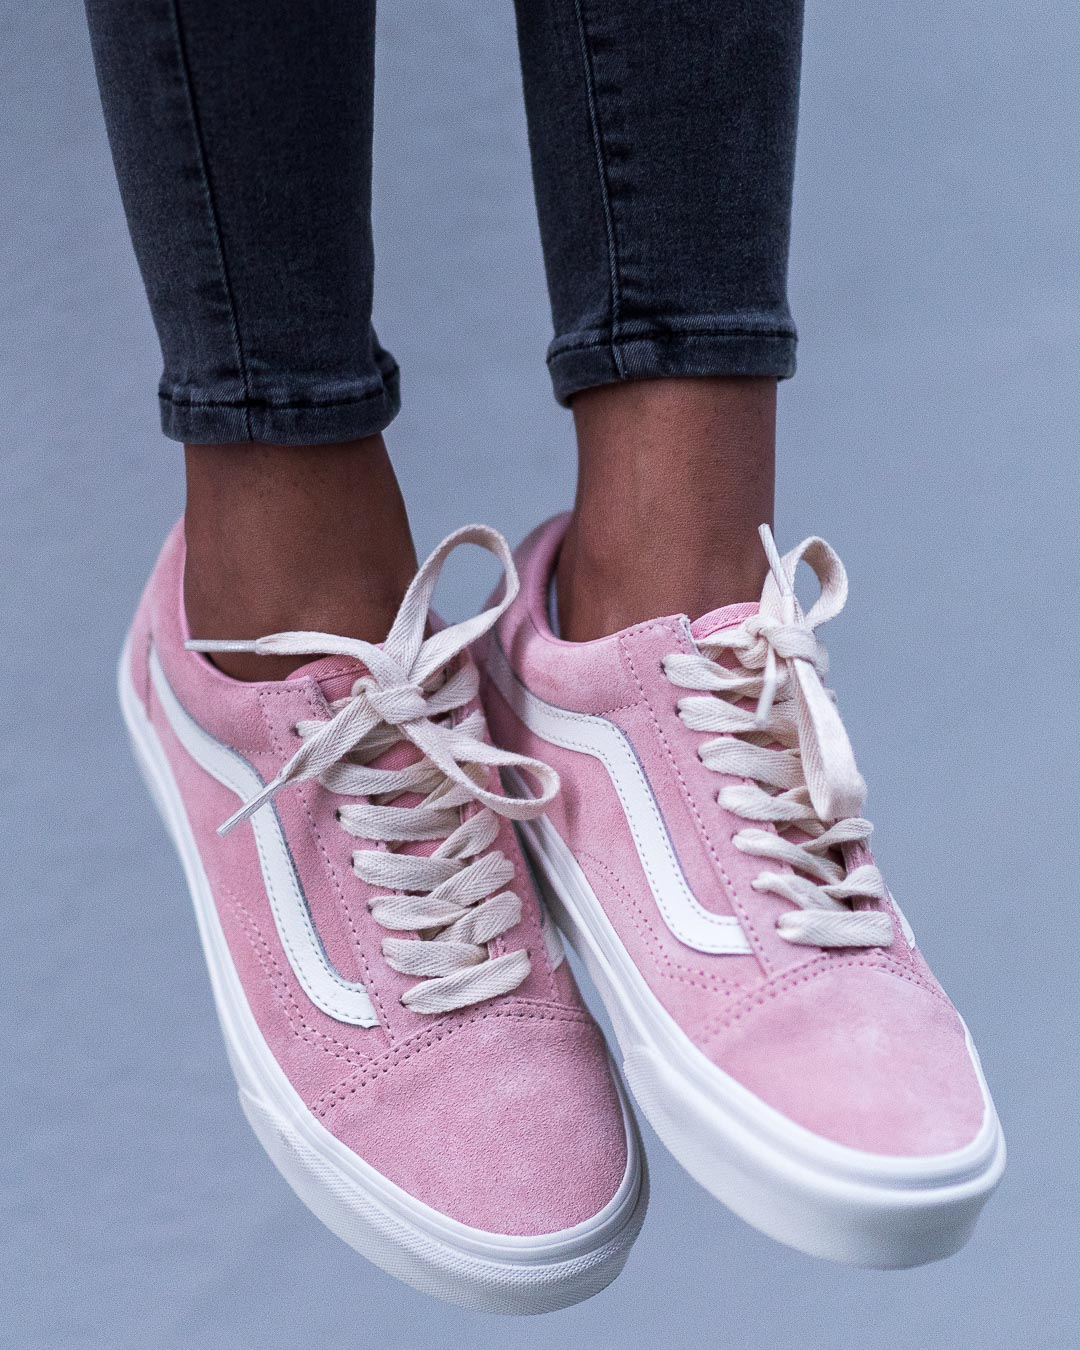 d8d4e64bc2 Sneakers of the Month  Vans Old Skool - Pose   Repeat